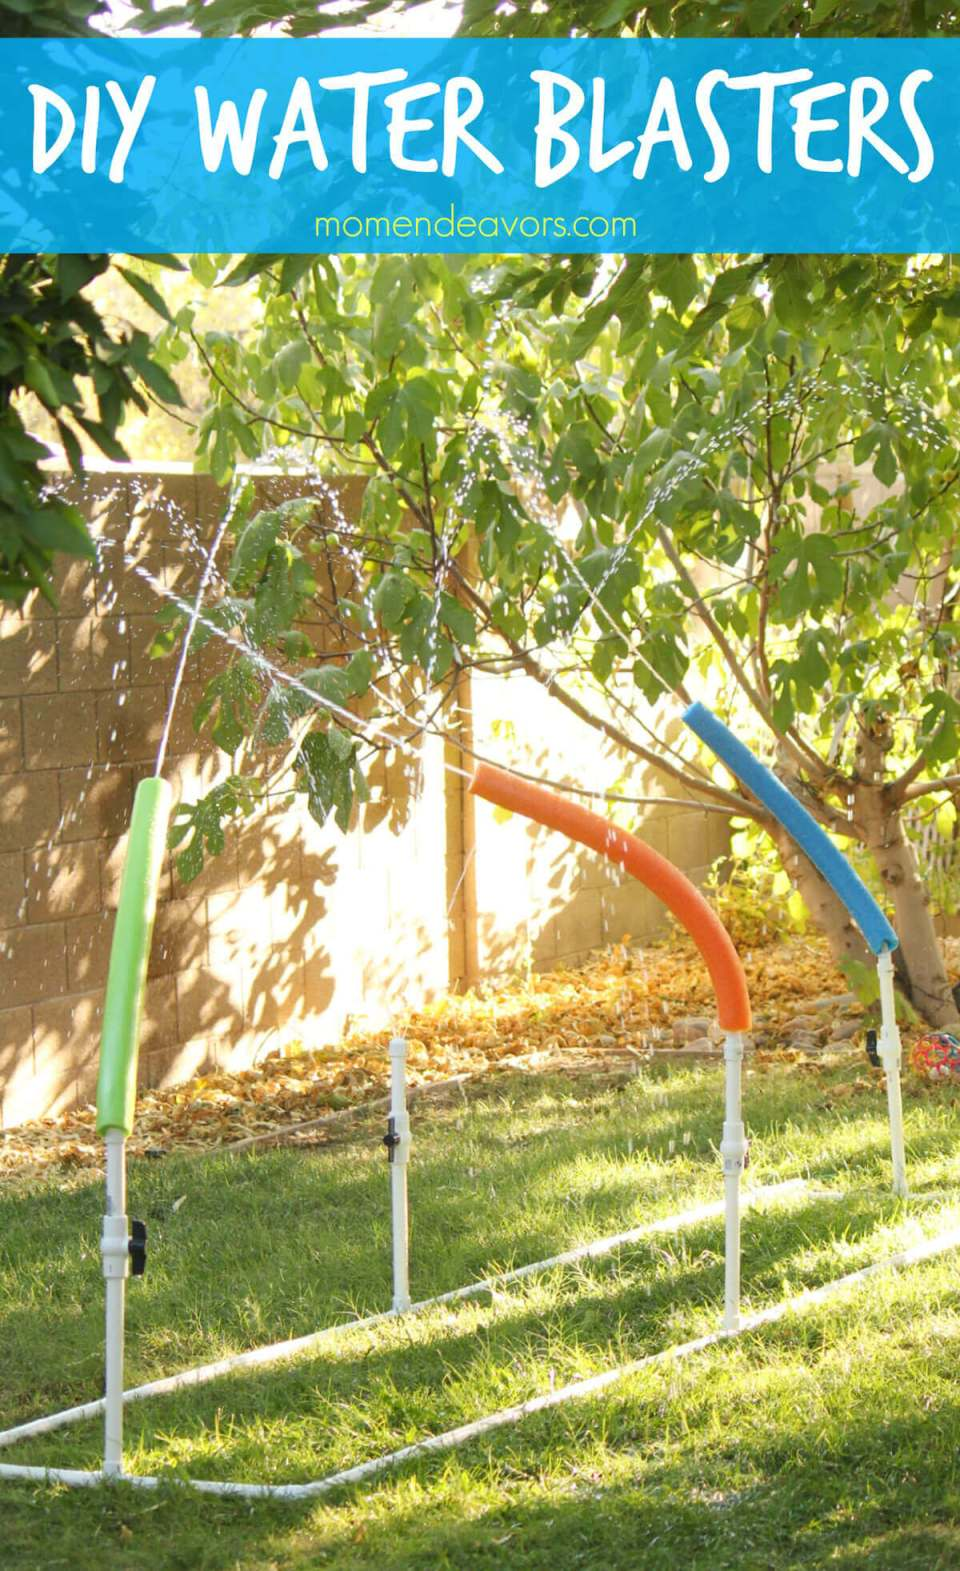 Wild and Wiggly Pool-Noodle Sprinkler Setup